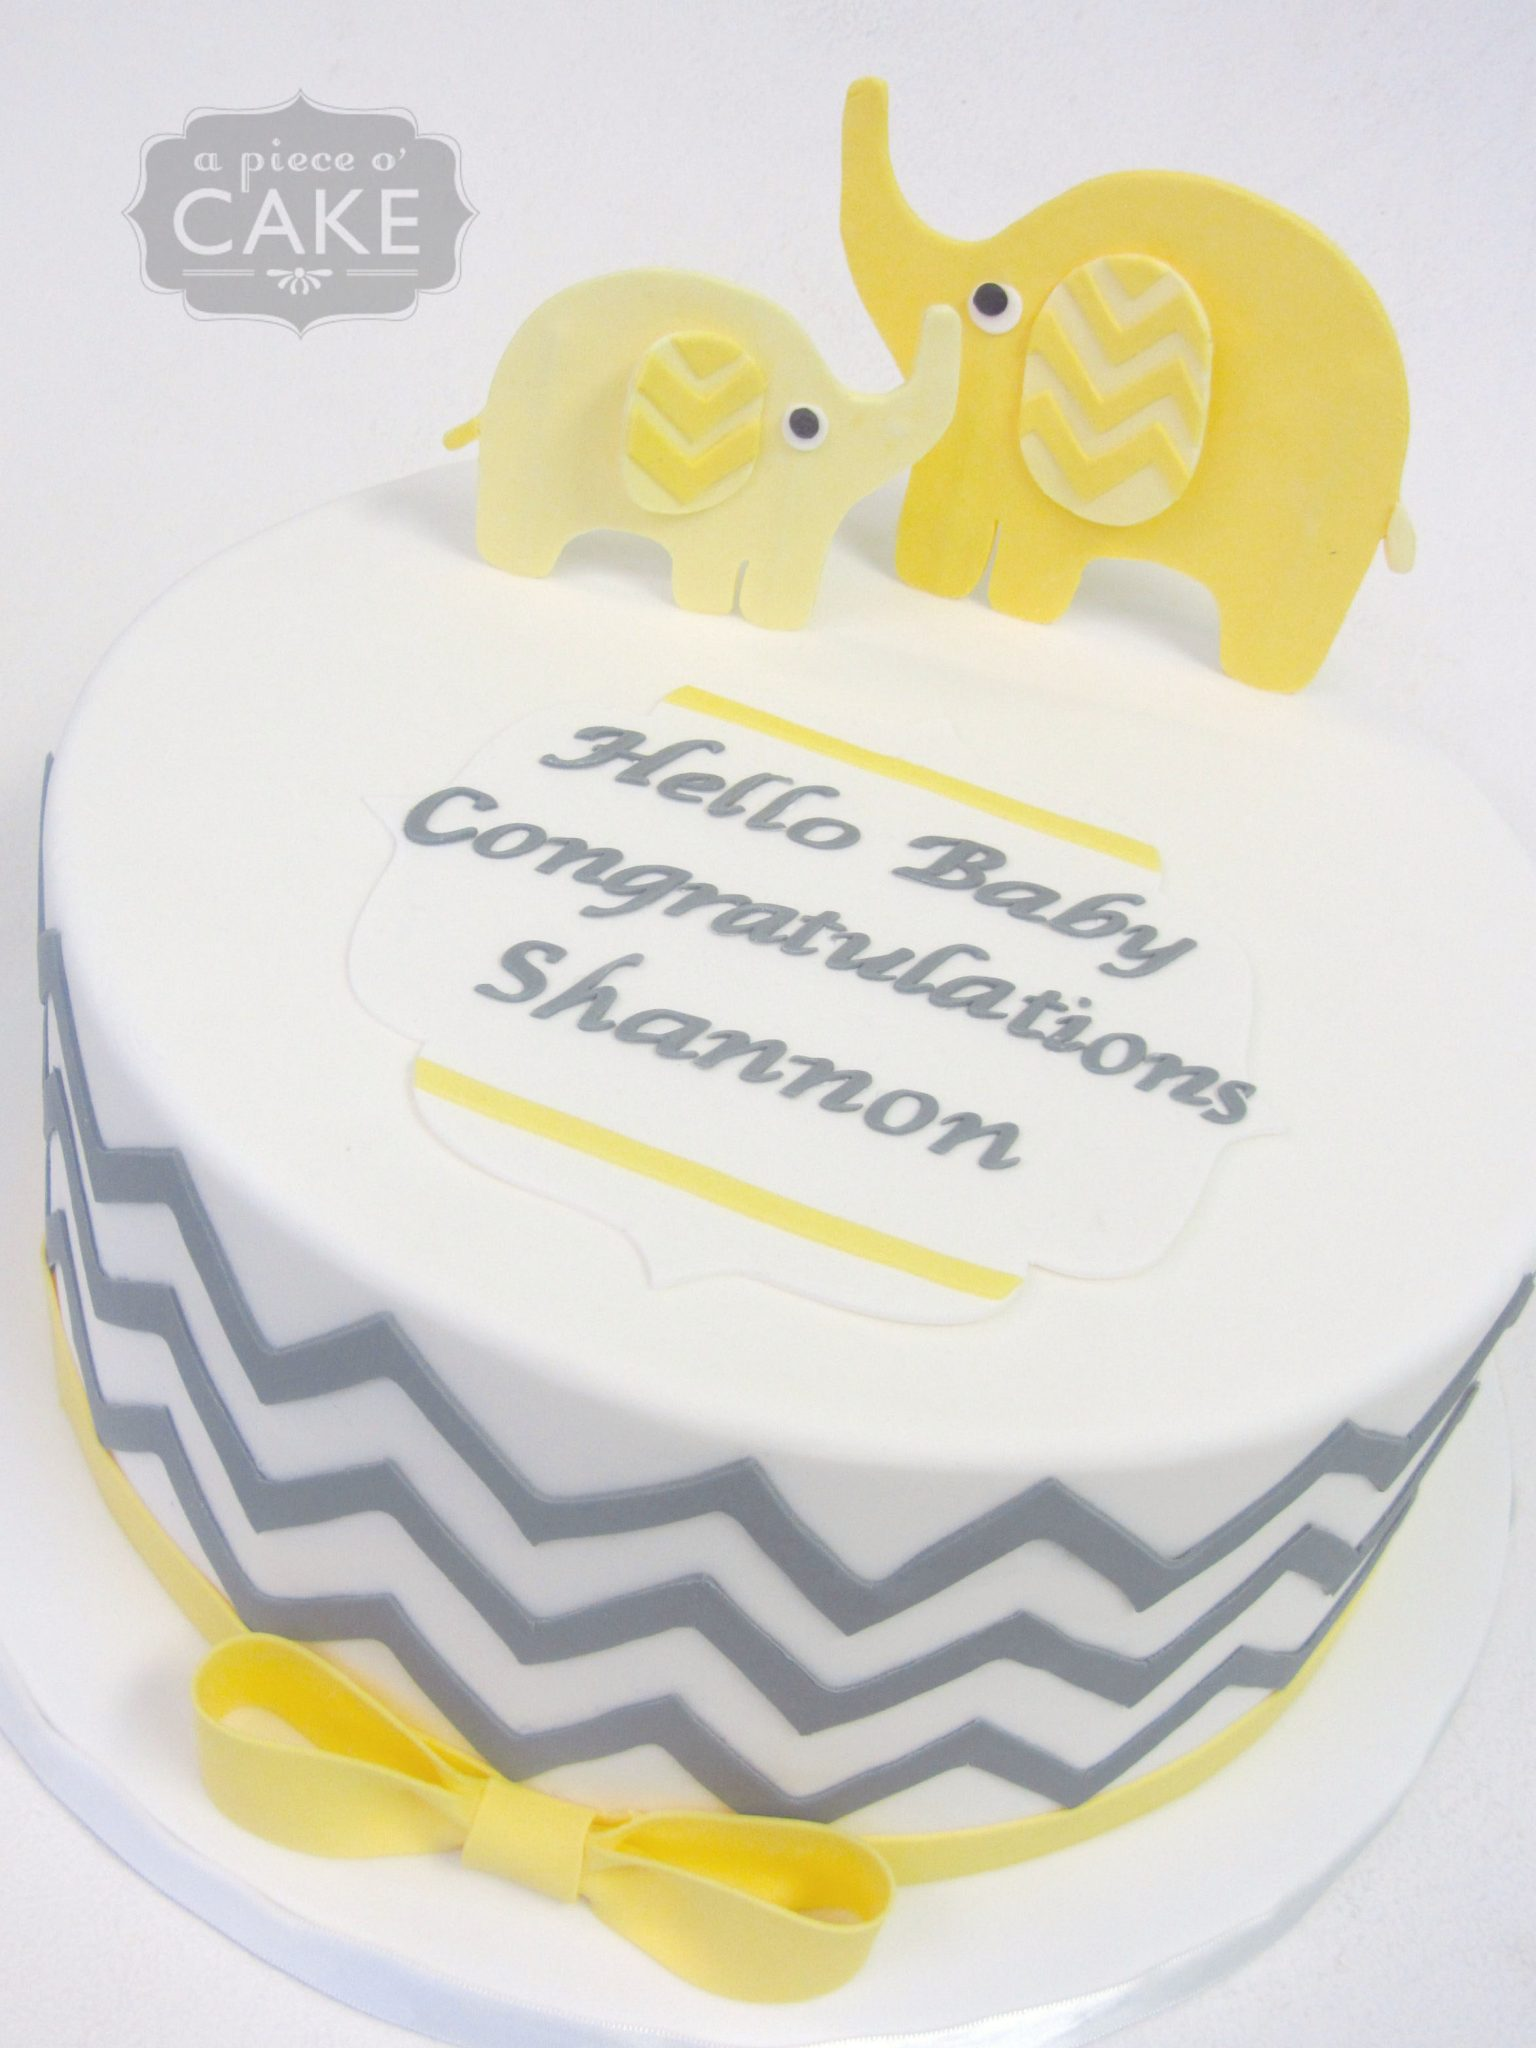 Baby Shower Cakes Gallery A Piece O Cake